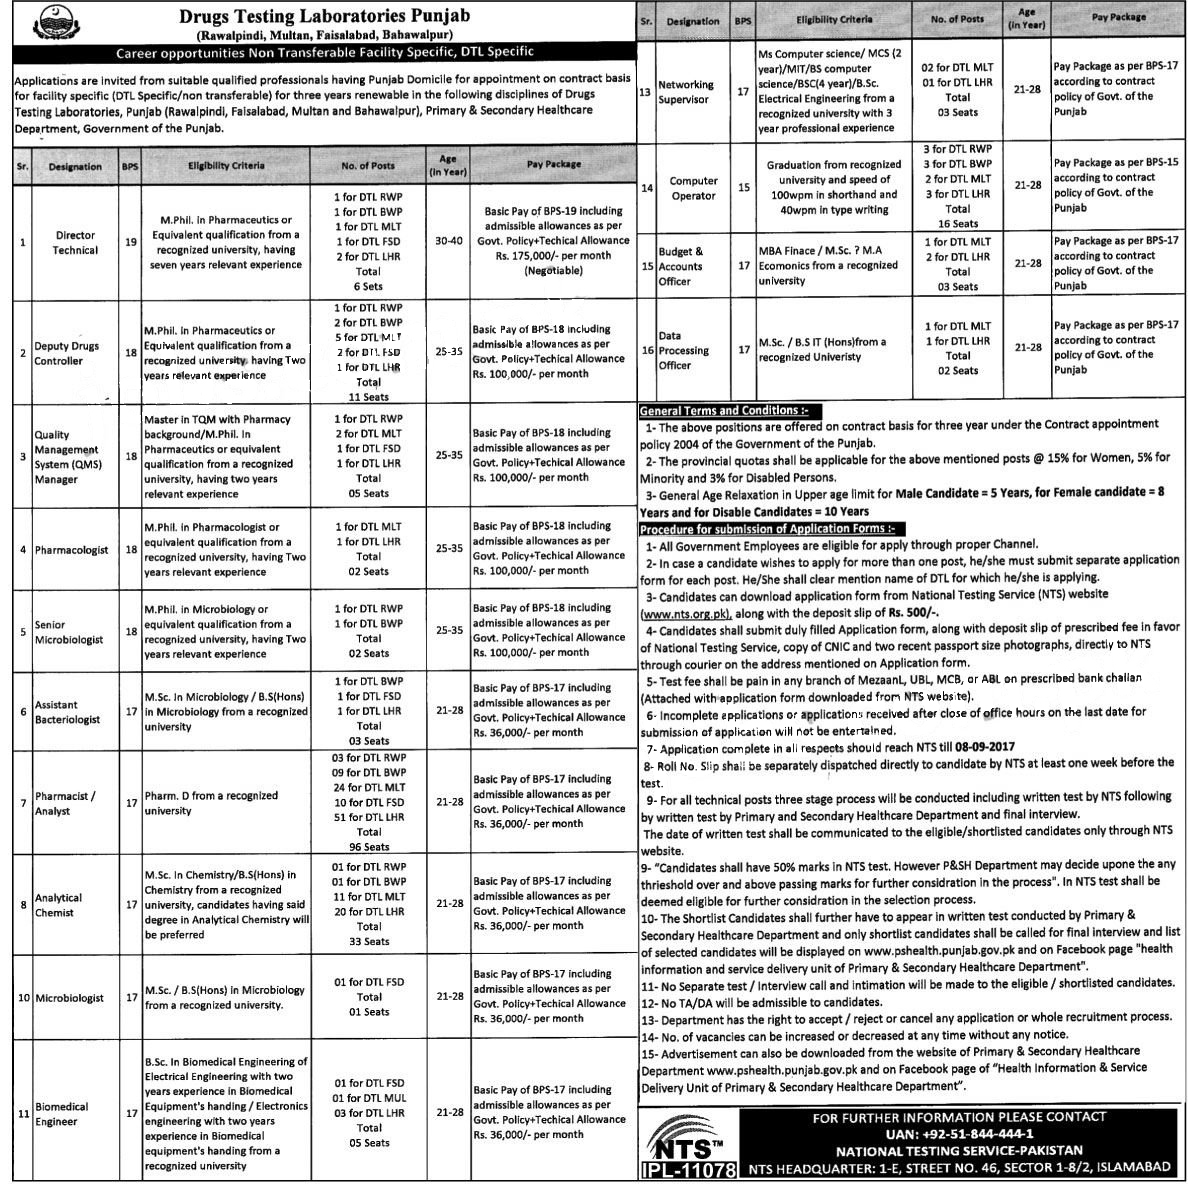 Drugs Testing Laboratory Punjab job  Aug 2017